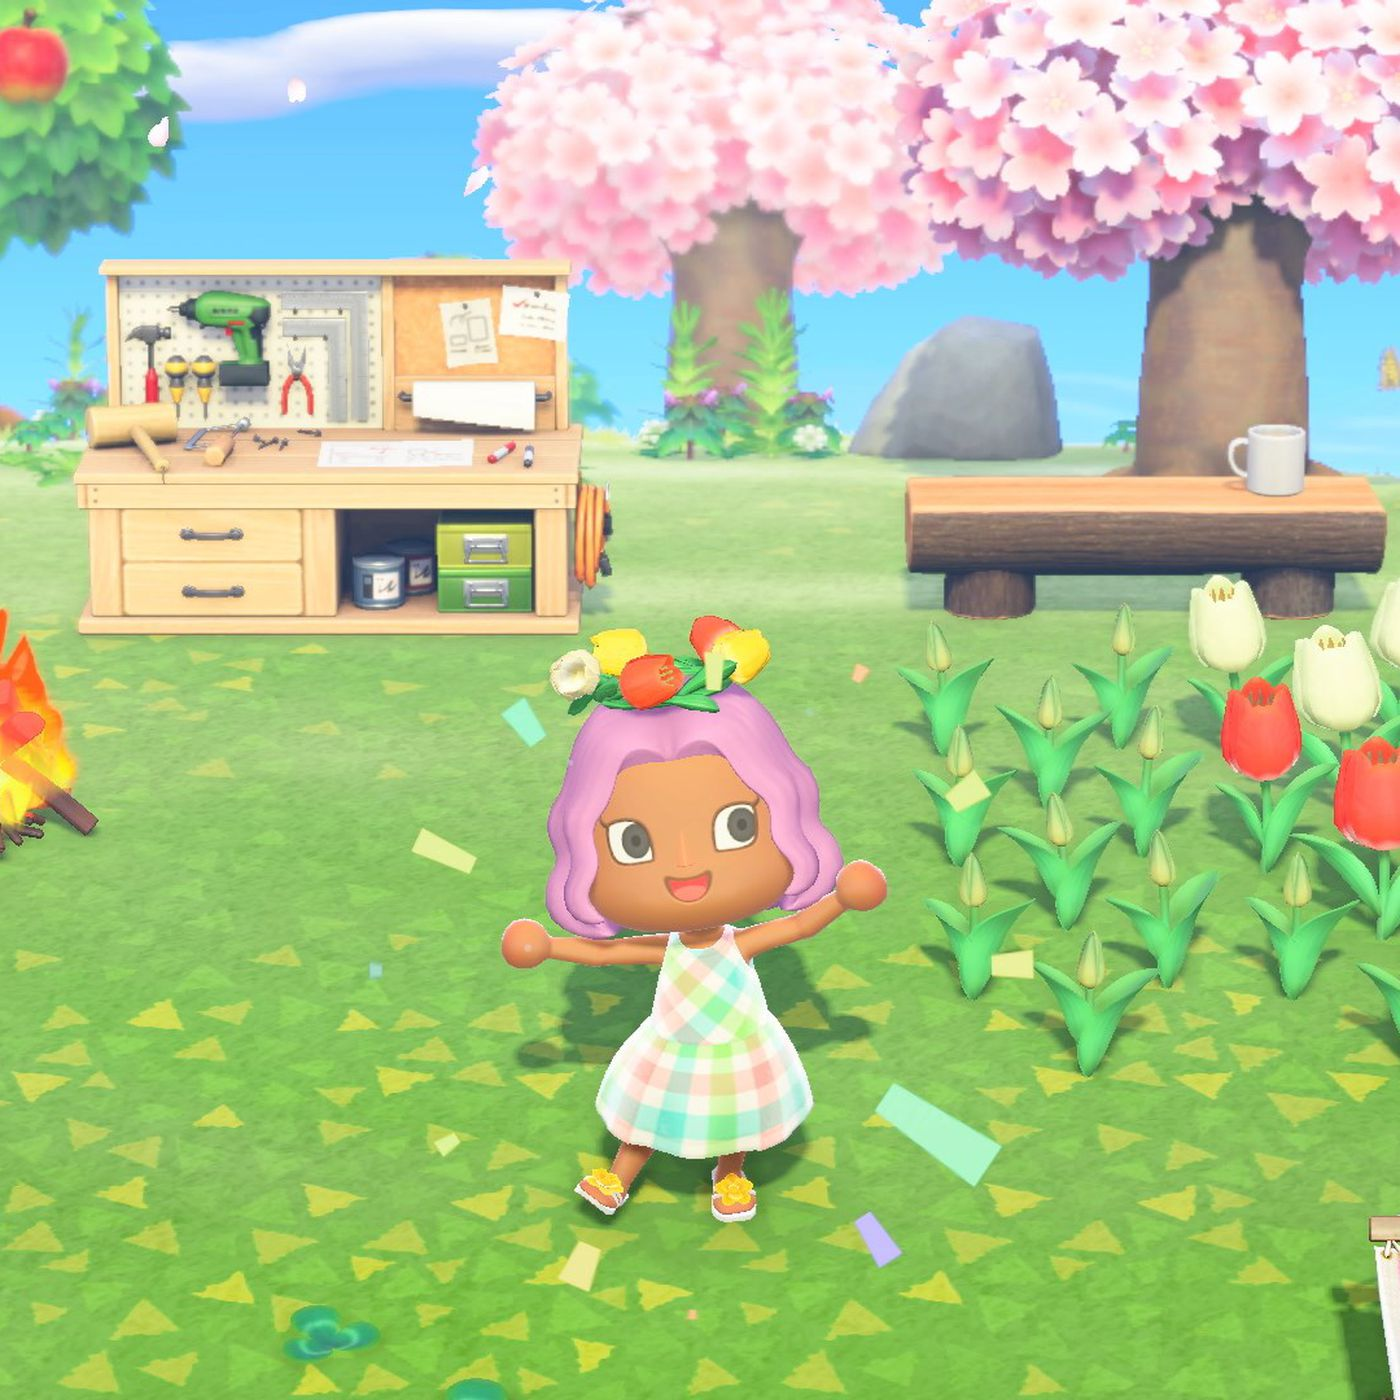 Buy Everything You Need For An Animal Crossing Birthday Party with Amazon Prime